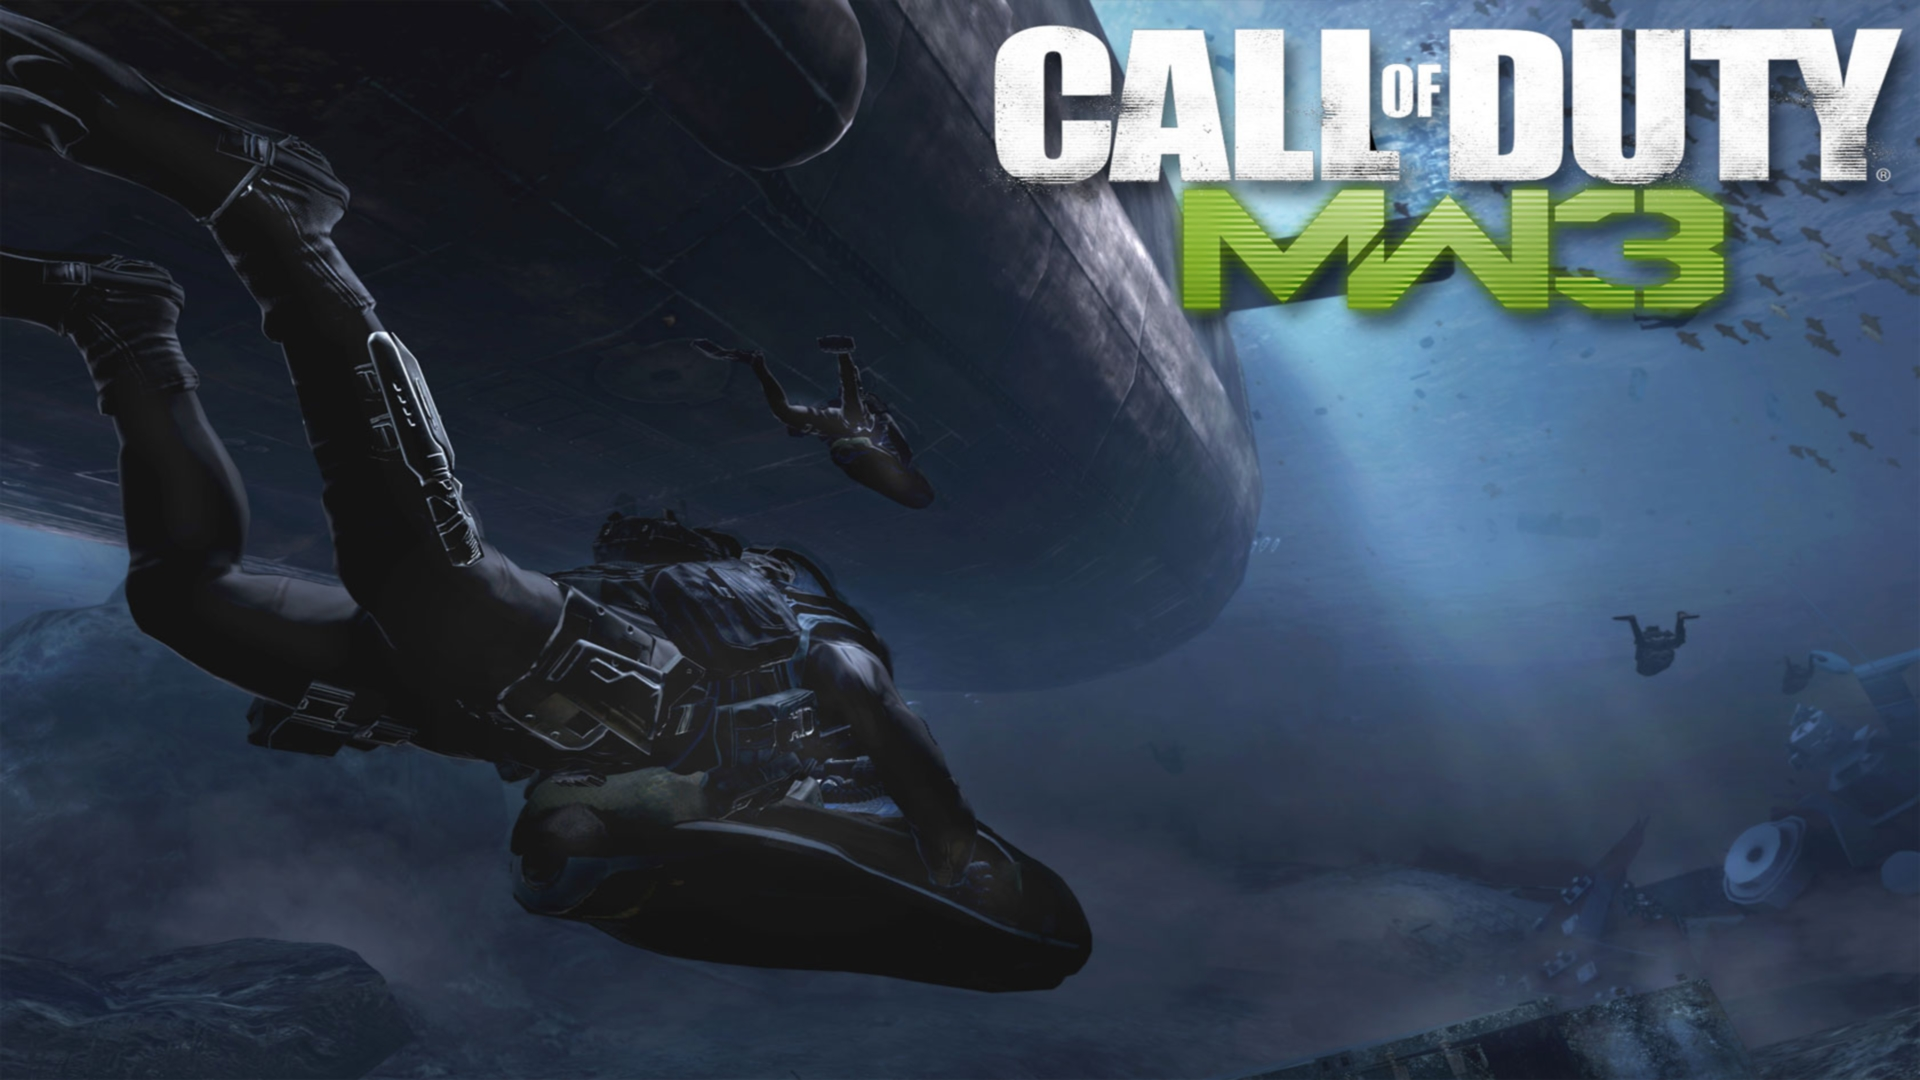 Call Of Duty Modern Warfare 3 Hd Wallpapers I Have A Pc